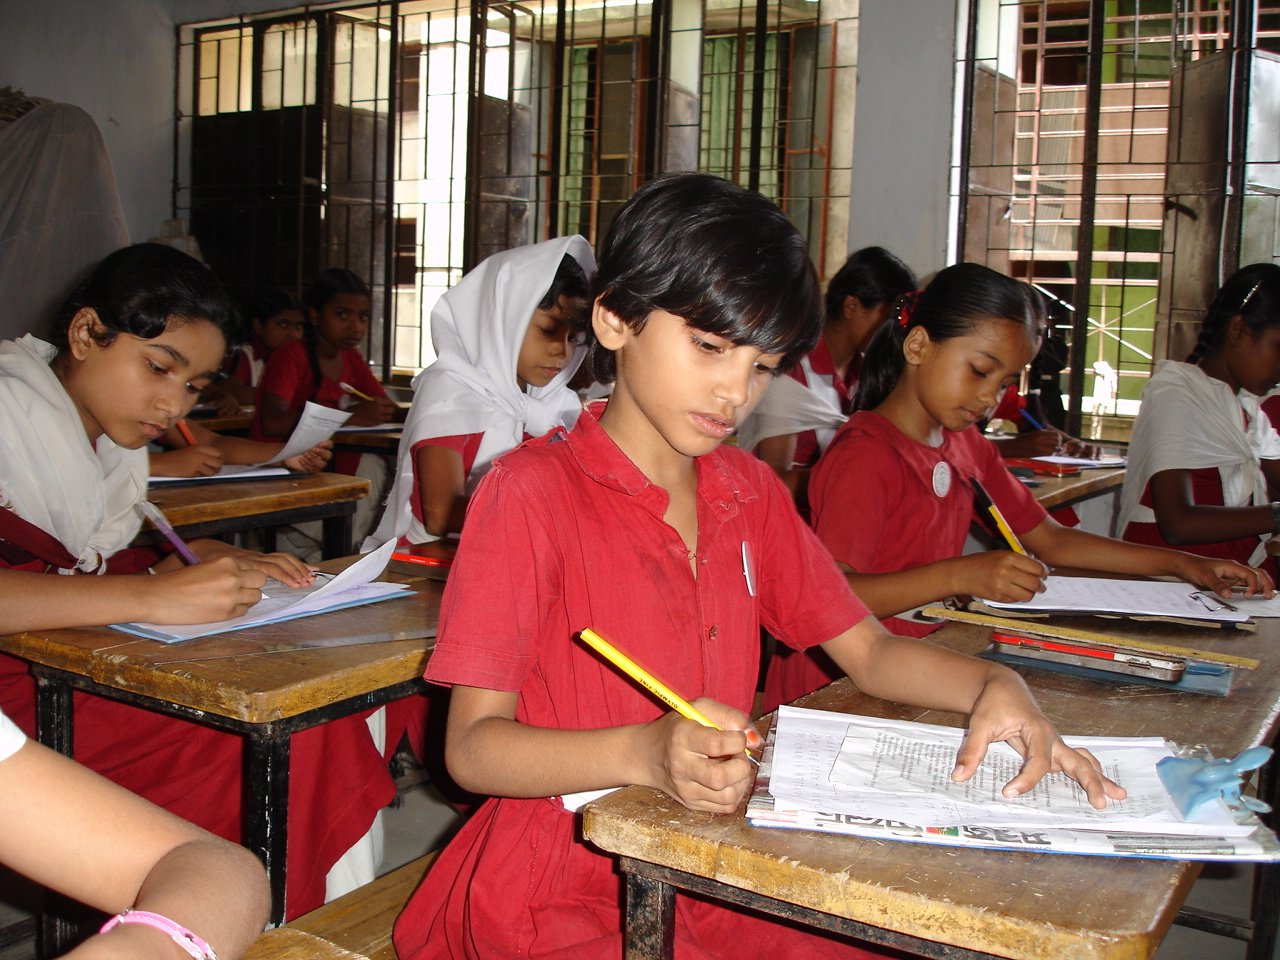 There are some 80,000 primary schools in Bangladesh, an impoverished nation of 150 million inhabitants.